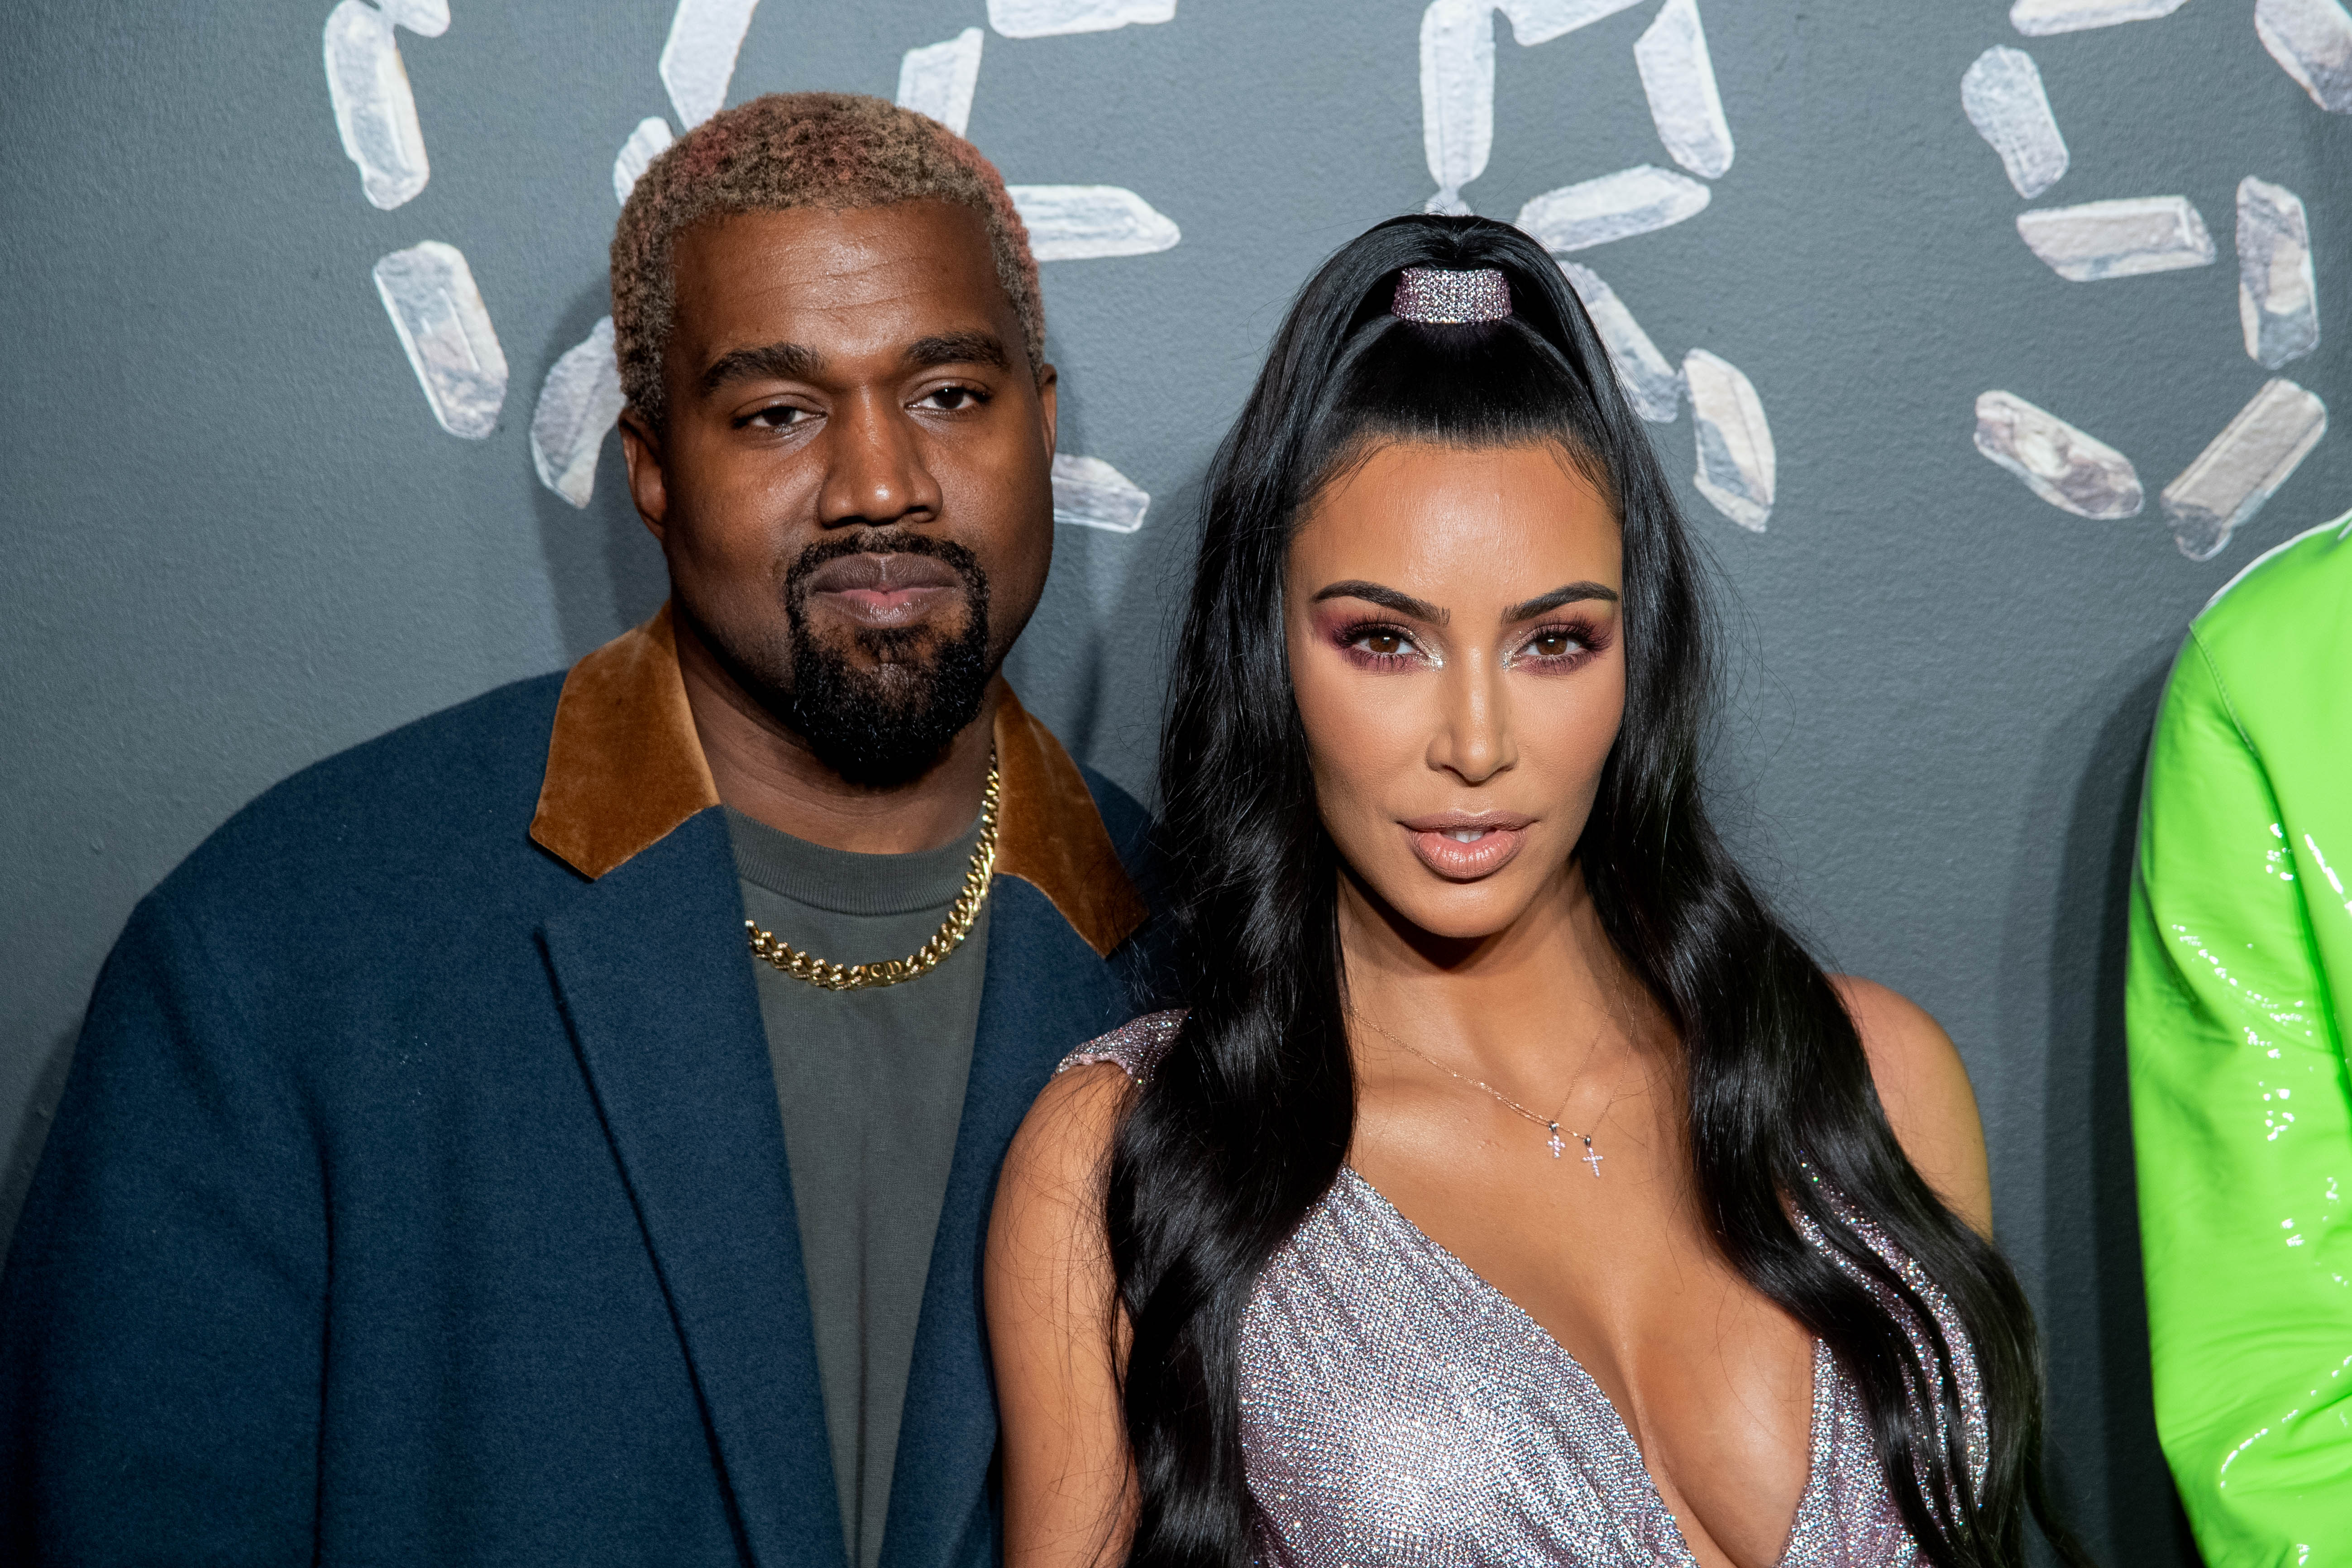 Kanye West and Kim Kardashian West at the the Versace fall 2019 fashion show held at the American Stock Exchange Building in lower Manhattan on December 02, 2018 | Photo: Getty Images